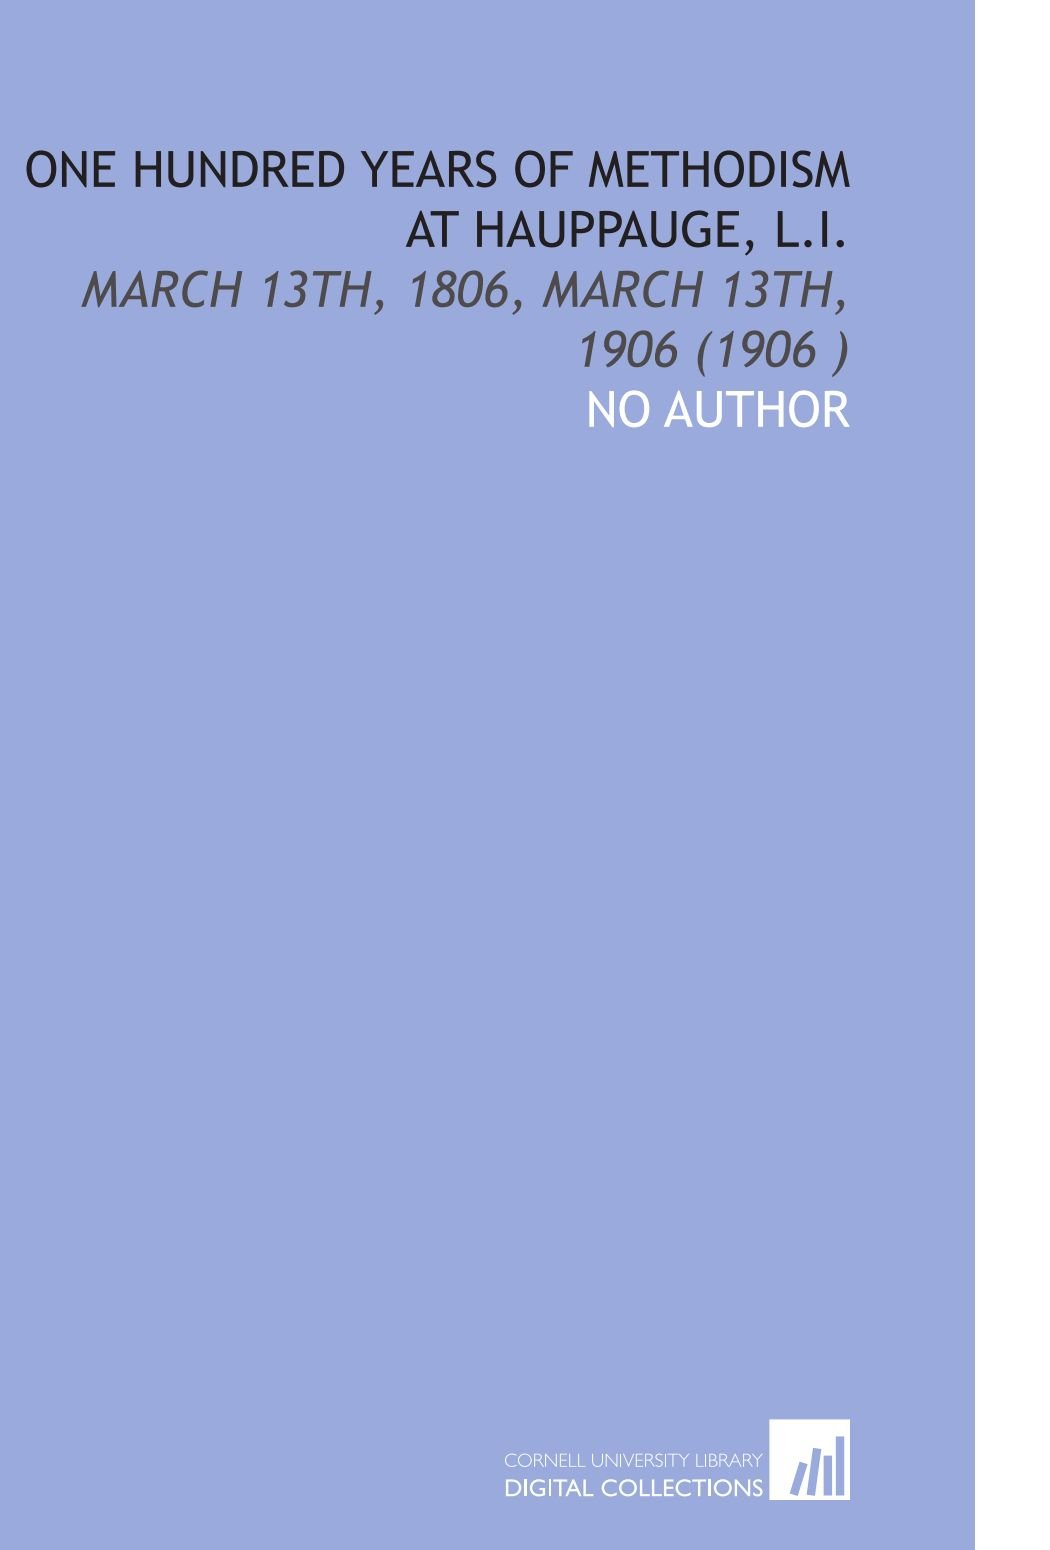 Download One Hundred Years of Methodism at Hauppauge, L.I.: March 13th, 1806, March 13th, 1906 (1906 ) PDF